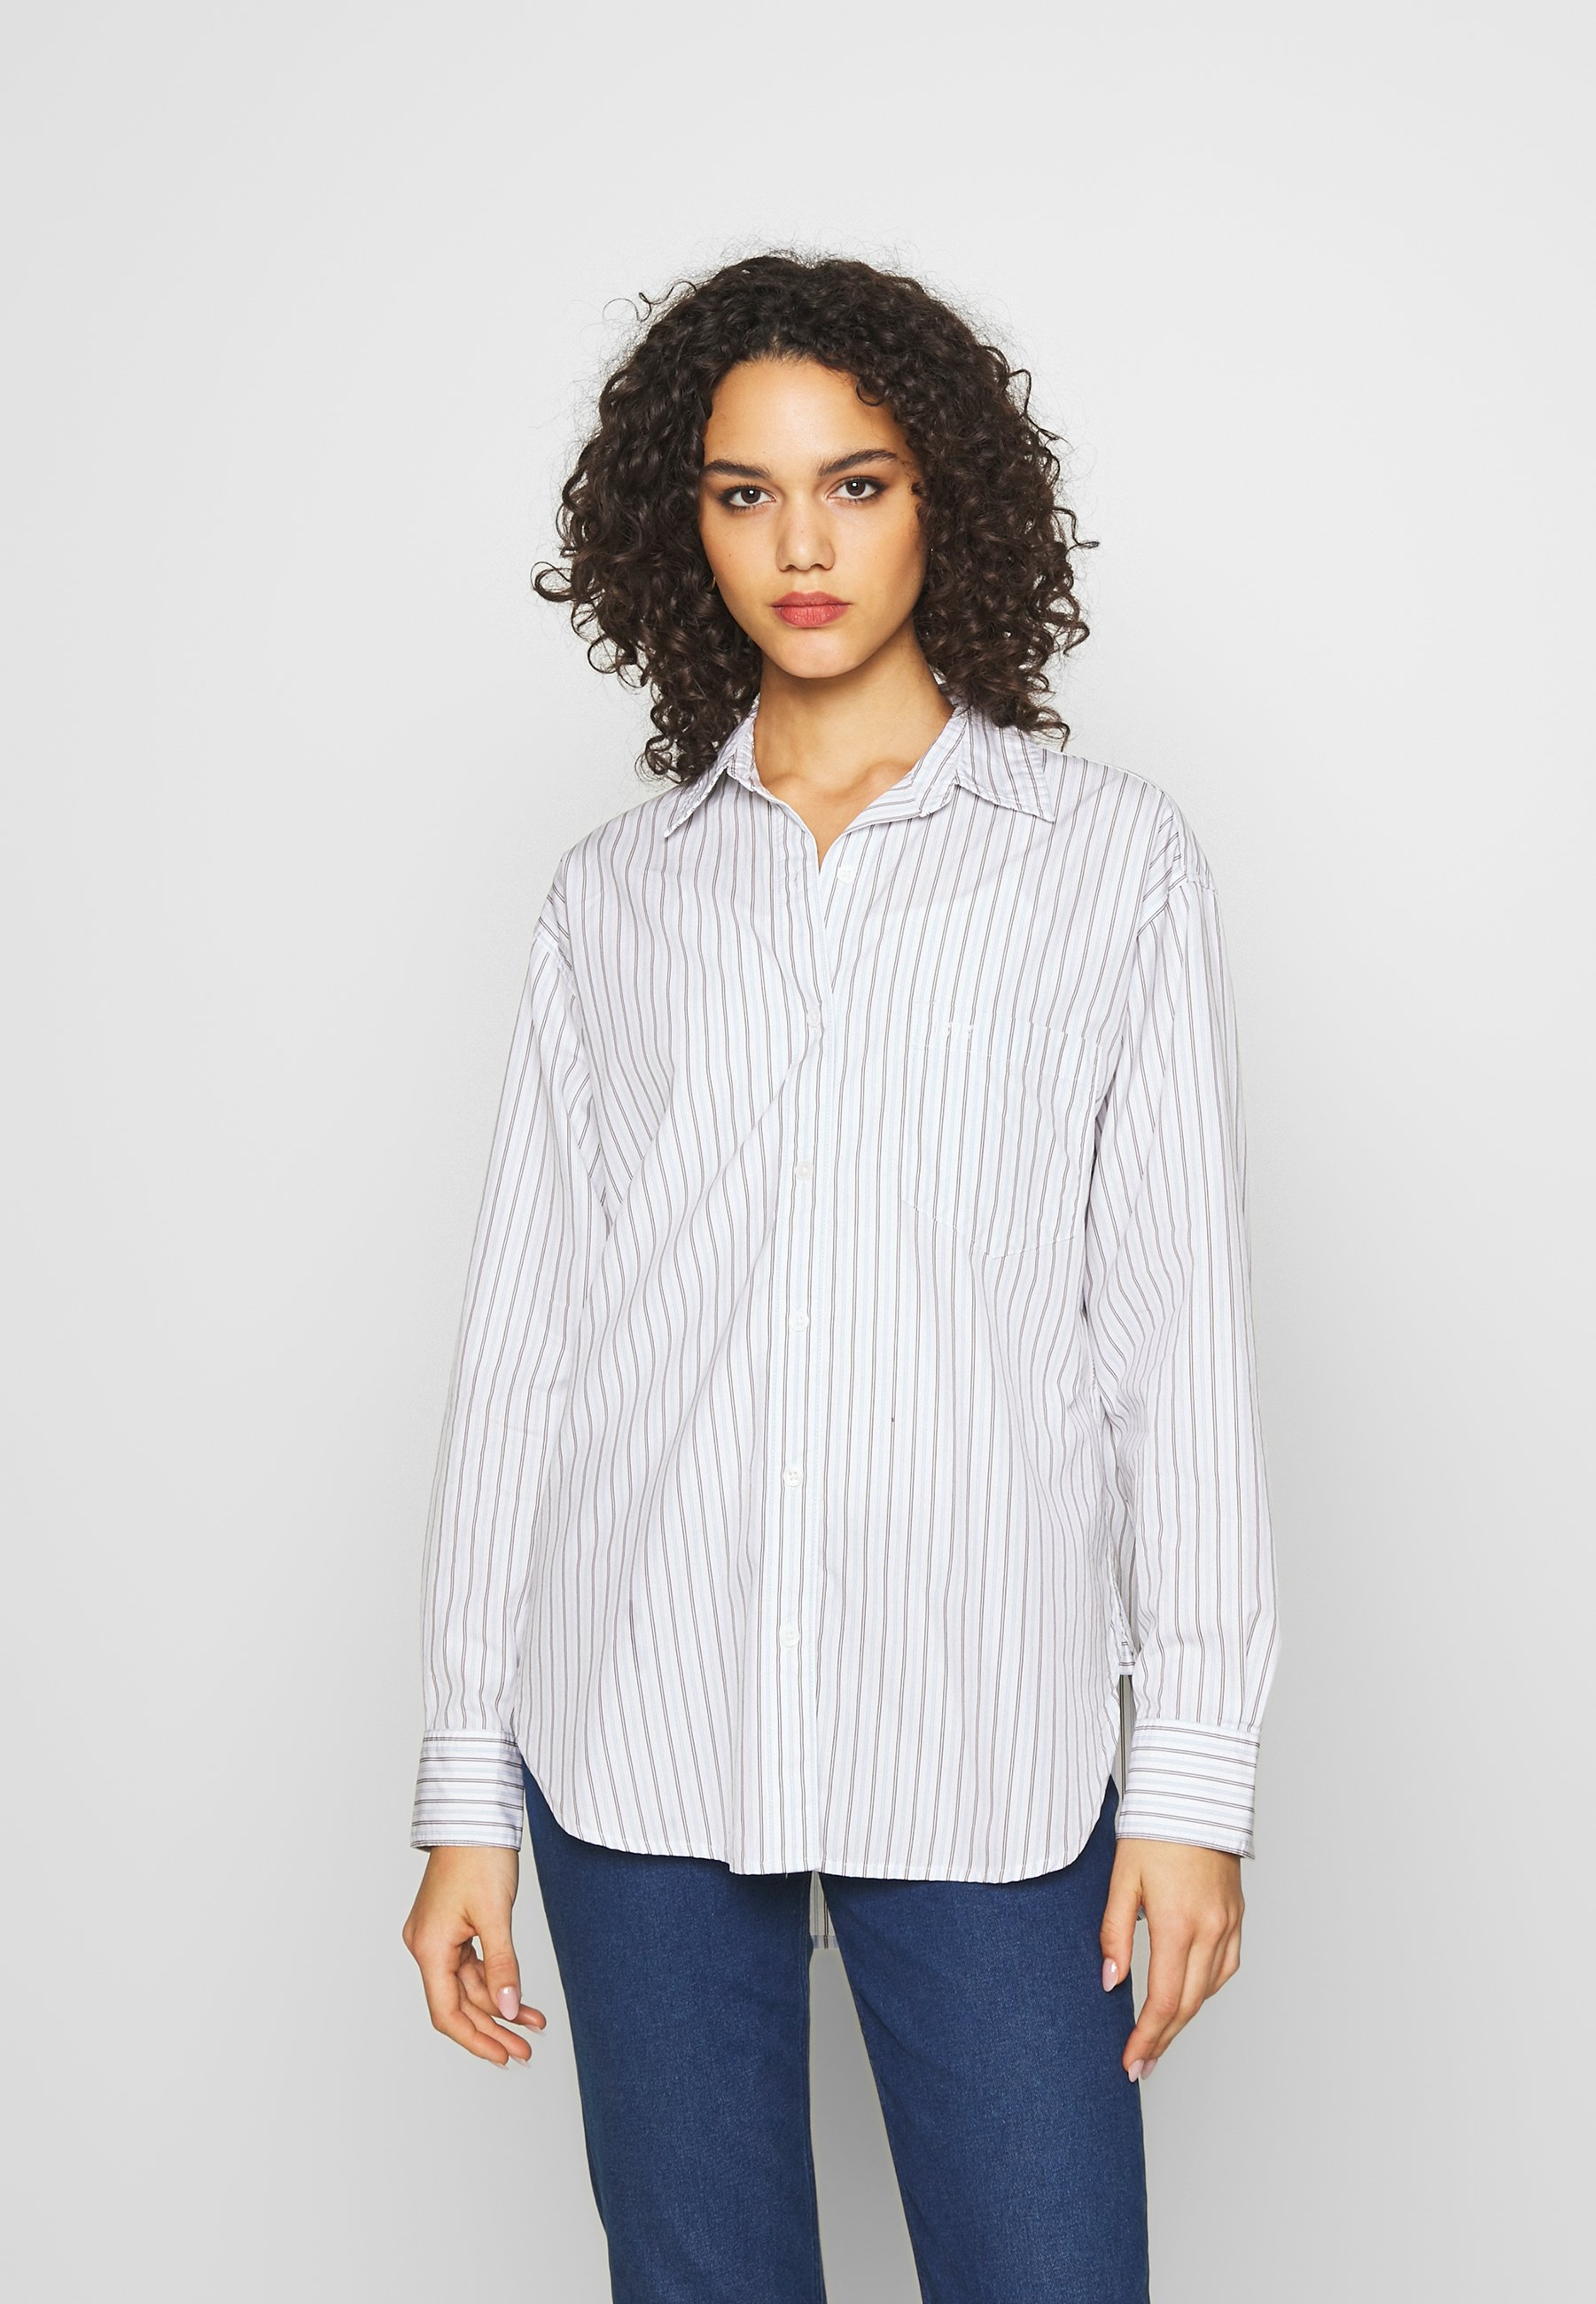 THE DAD SHIRT POCKET Overhemdblouse amarisbright white